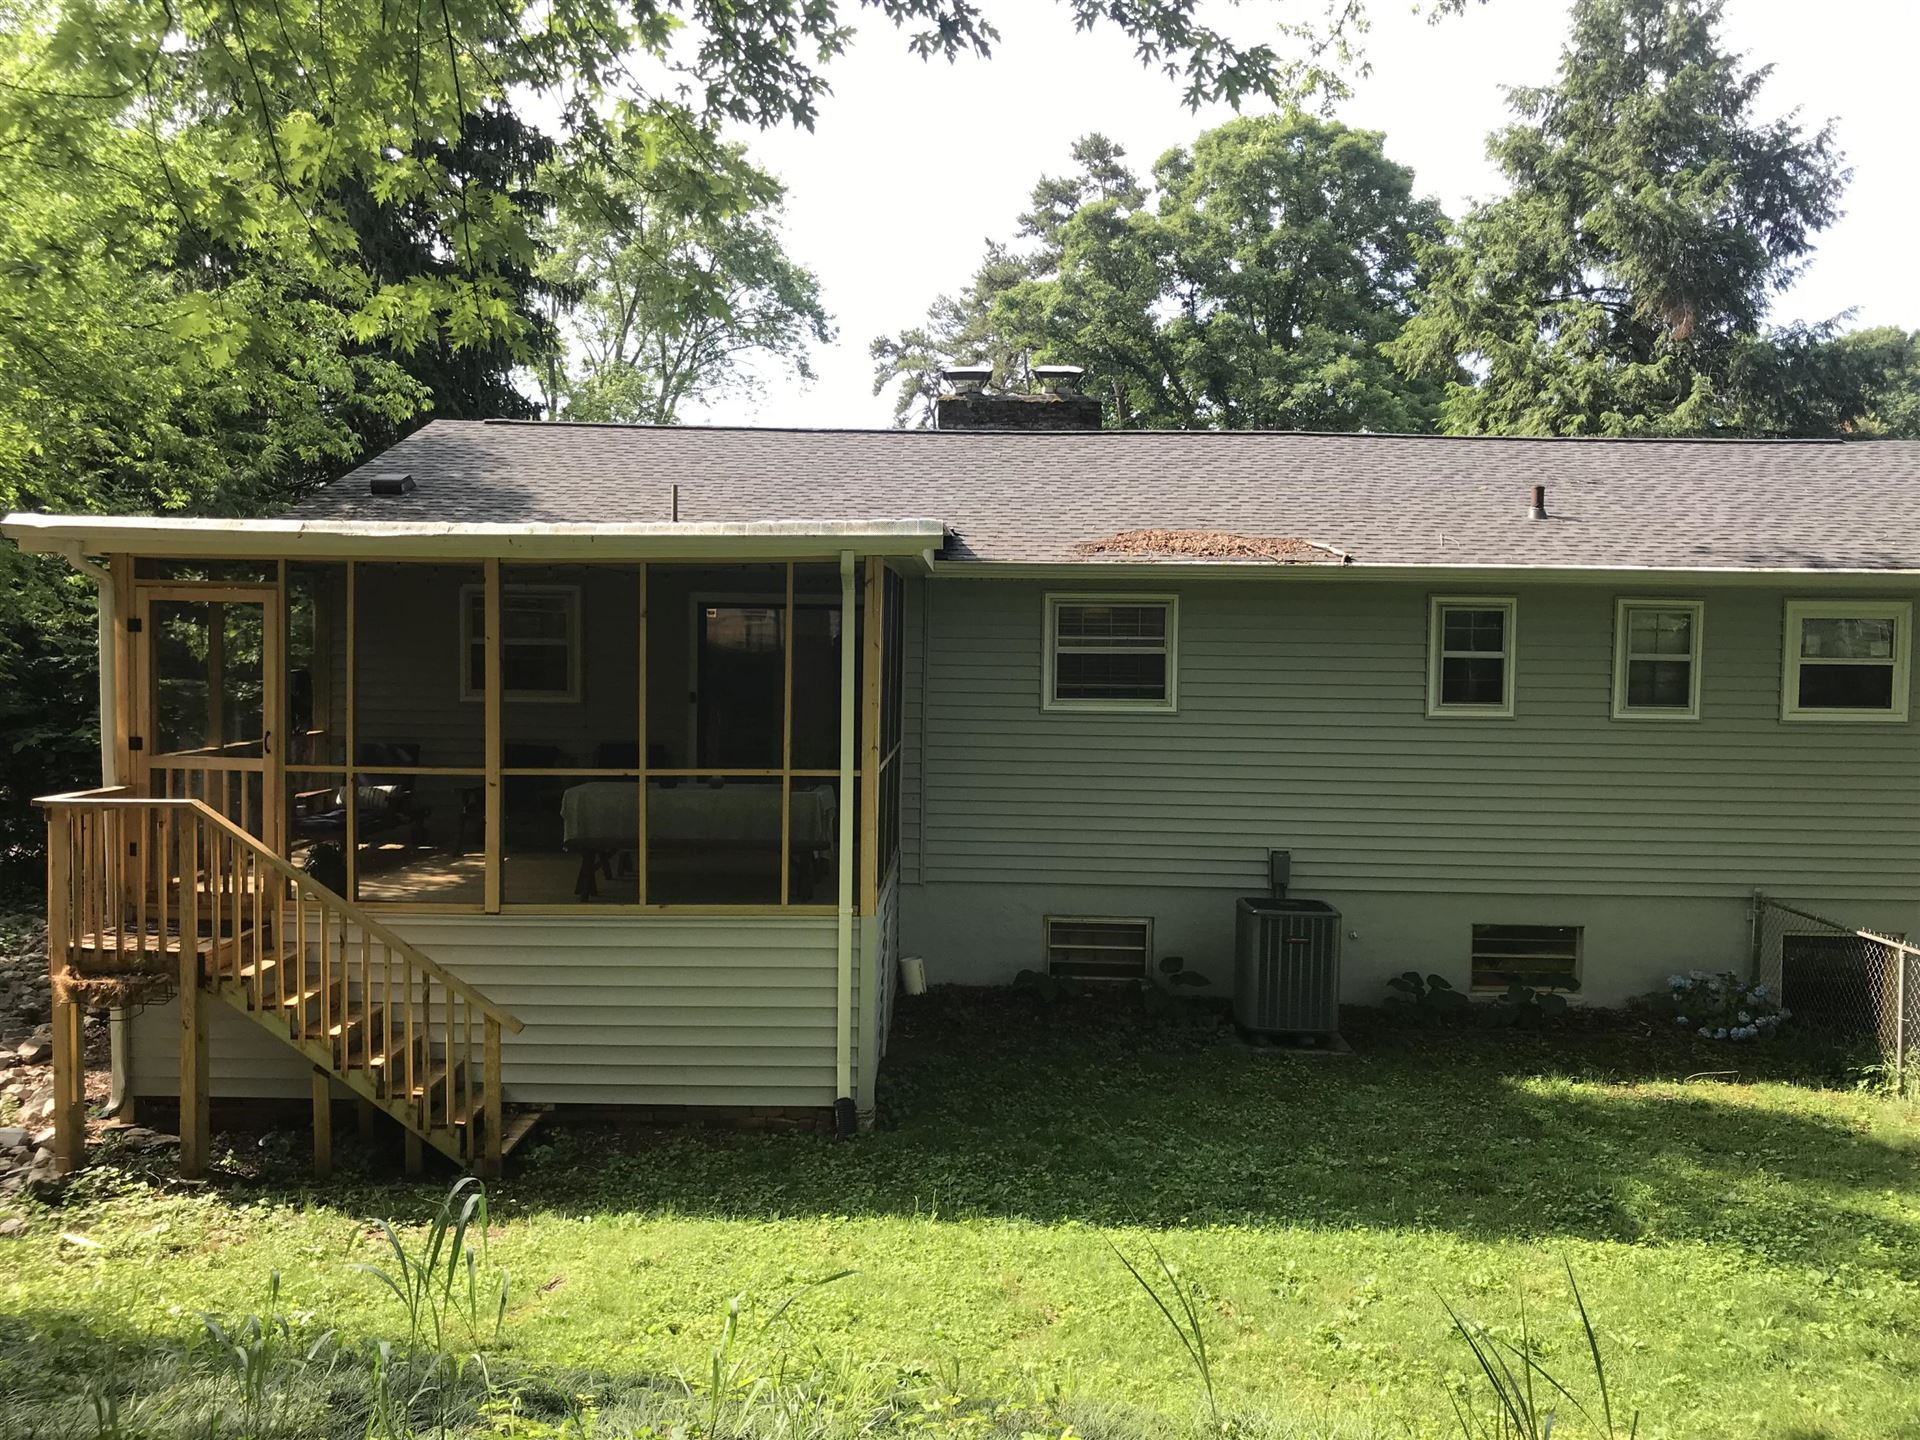 Photo of 7717 Sabre Drive, Knoxville, TN 37919 (MLS # 1156891)